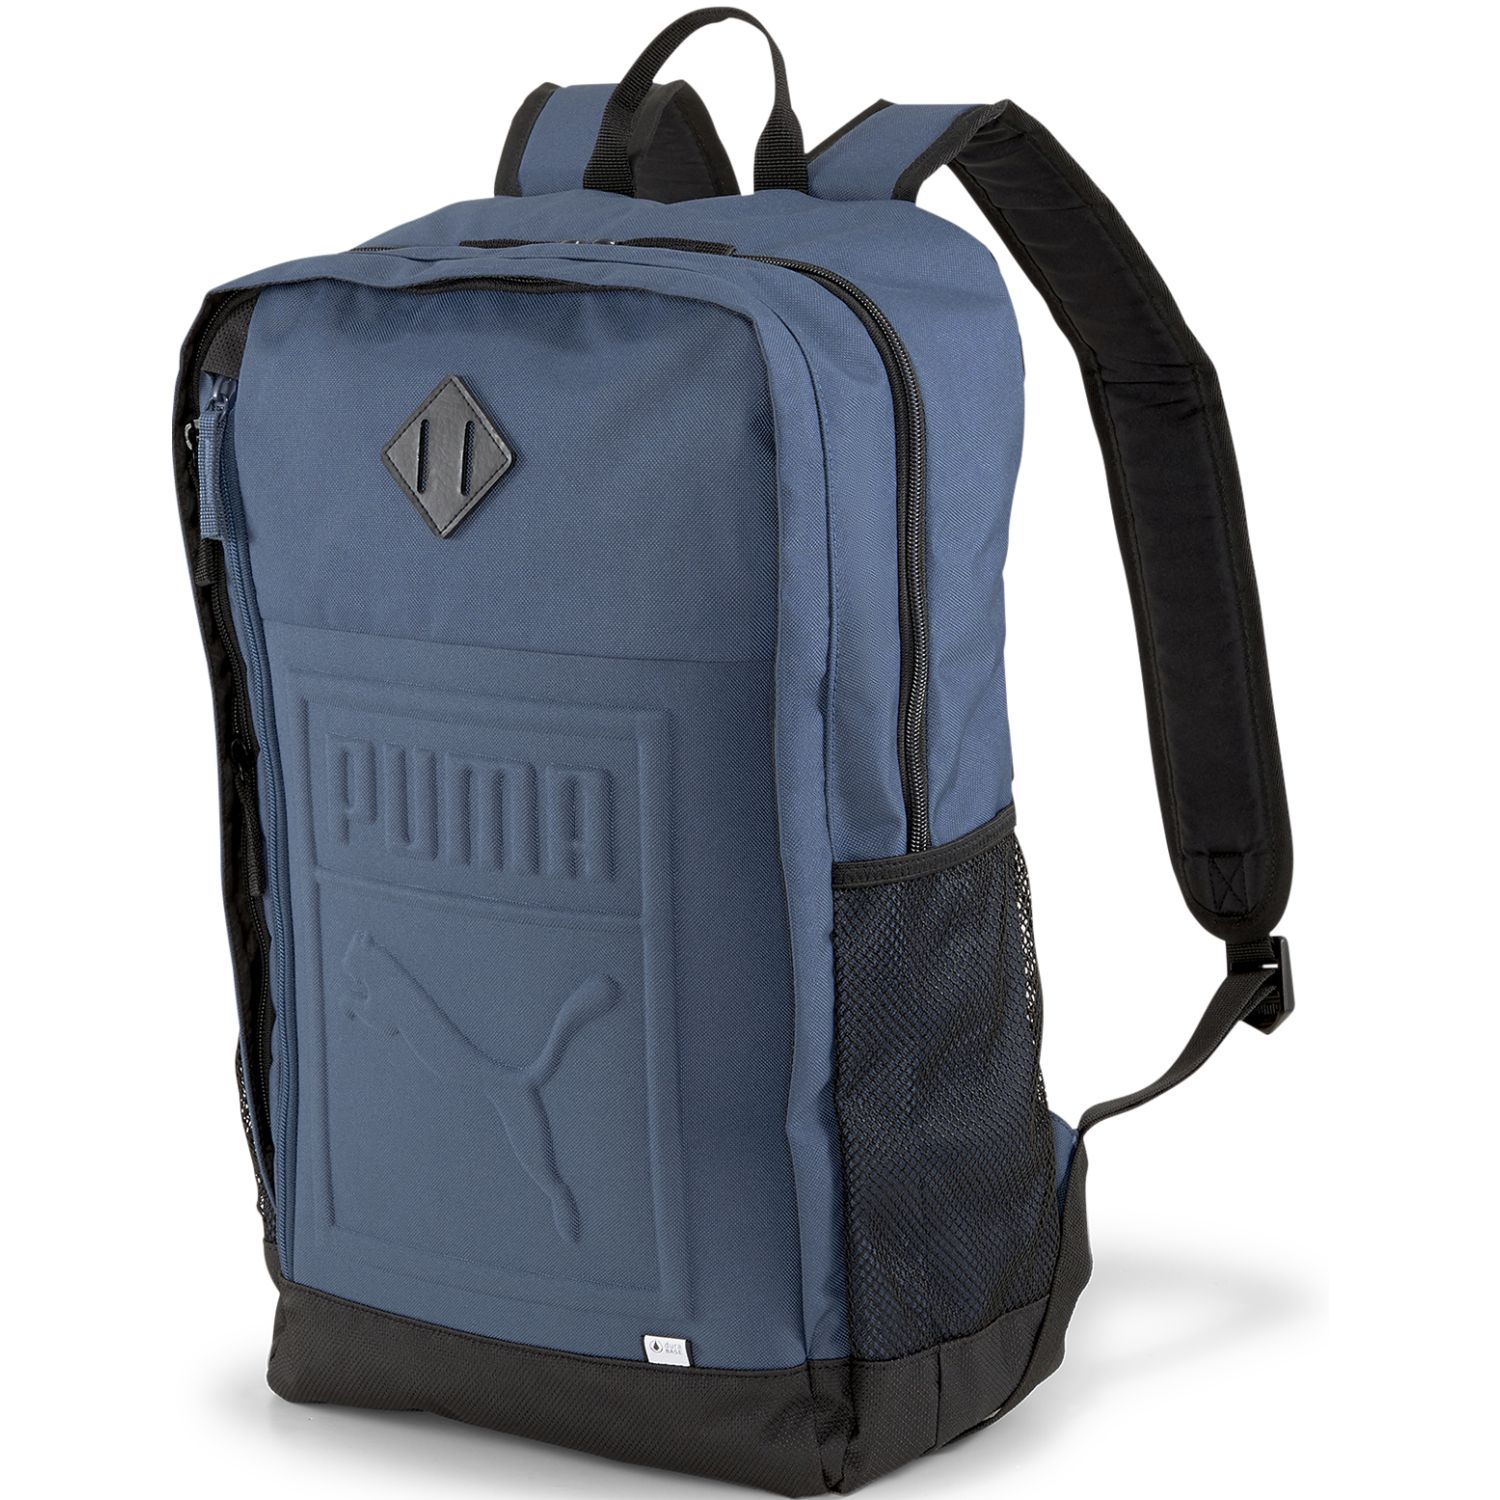 Puma PUMA S Backpack Azul / negro Mochilas Multipropósitos